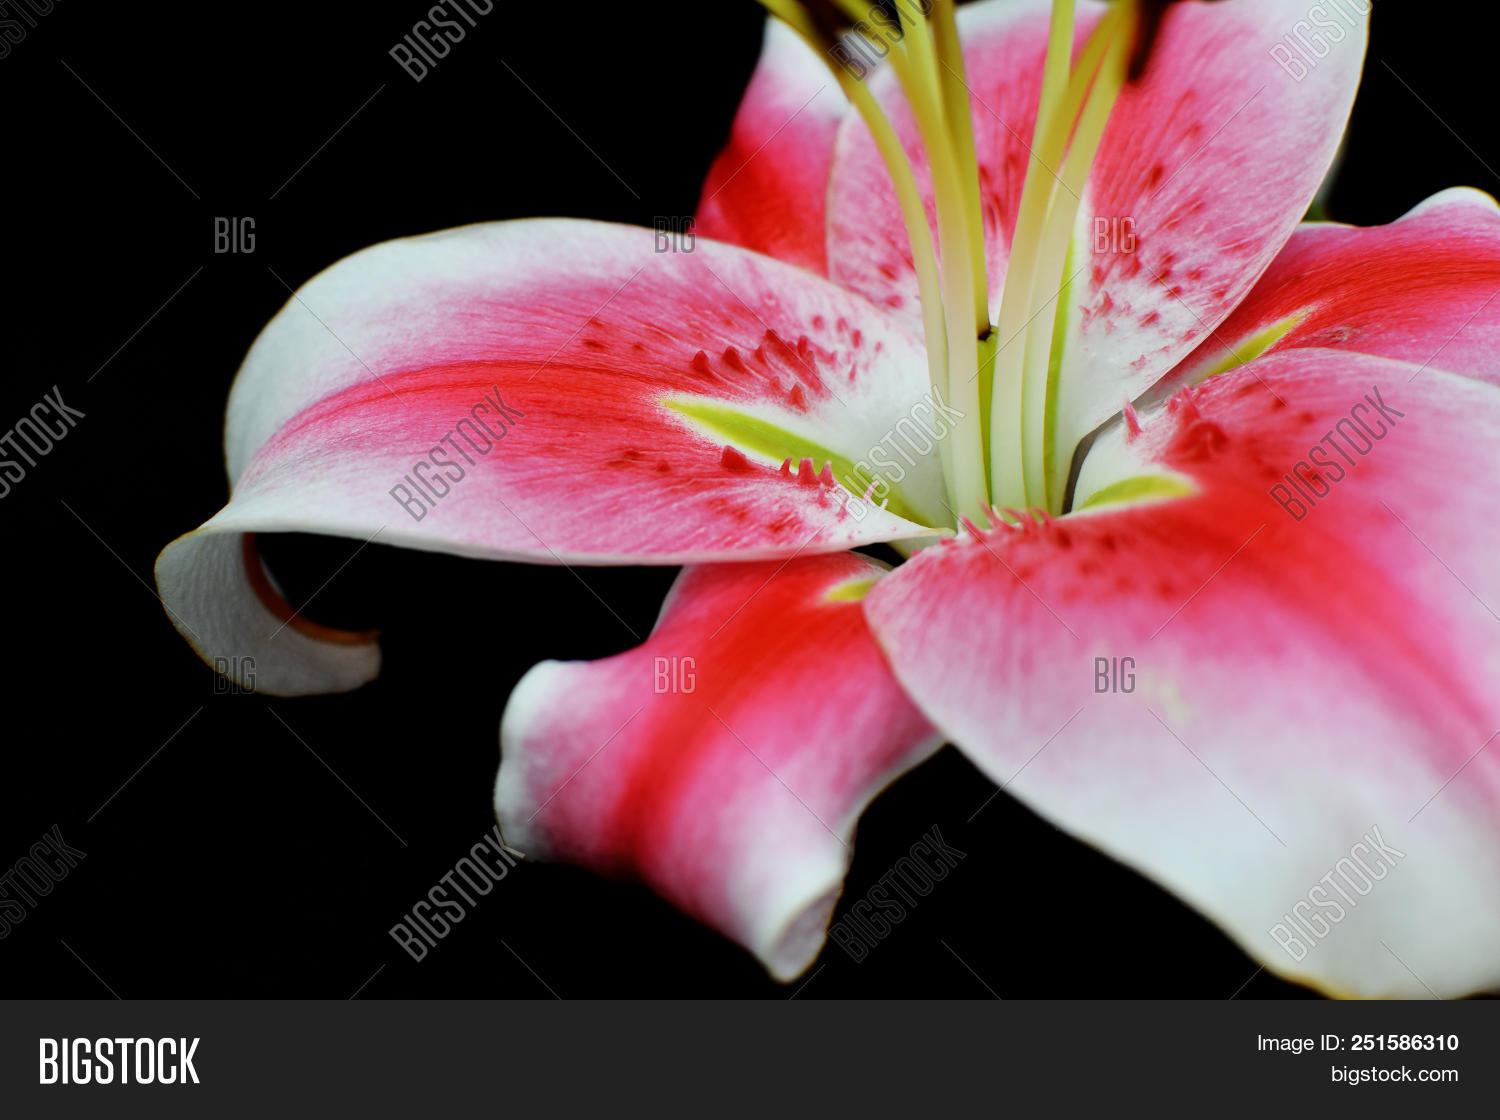 White pink lily flower image photo free trial bigstock white pink lily flower on black background with copy space for text close up view izmirmasajfo